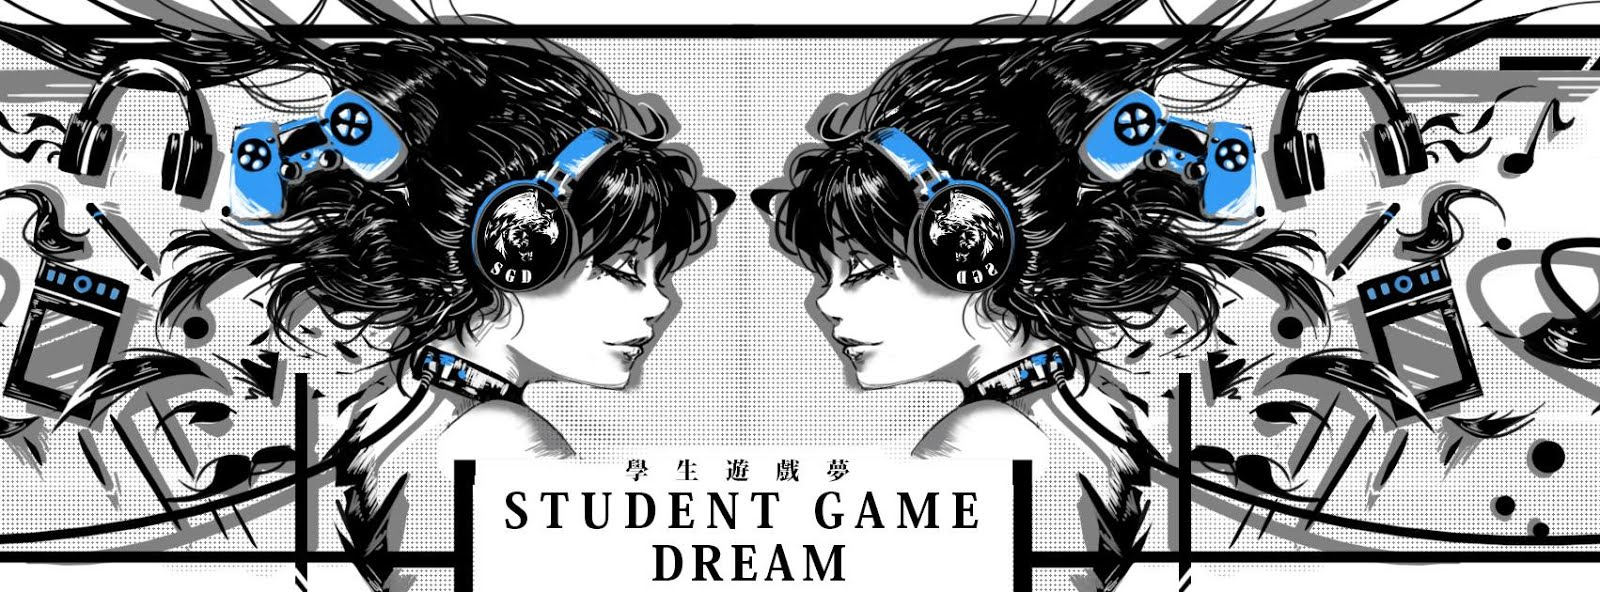 學生遊戲夢 Students Game Dream